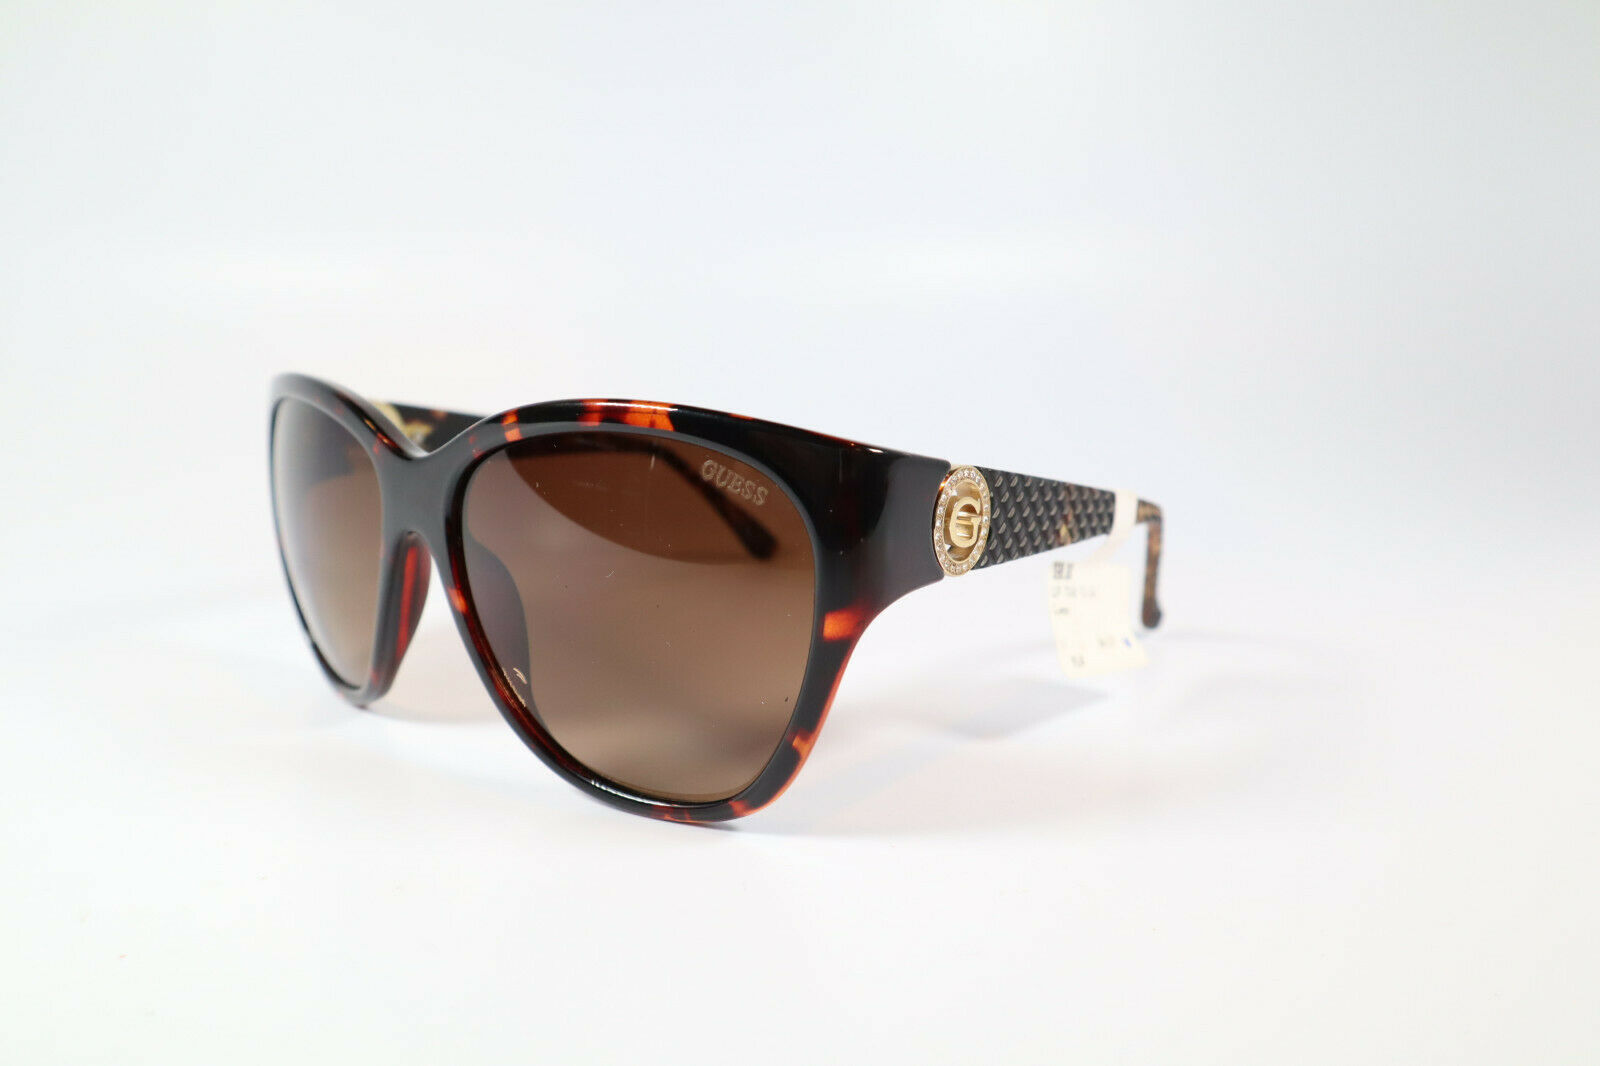 GUESS GUP 7348 TO-34 Tortoise 60-16-130 Women's Polarized Sunglasses Defect